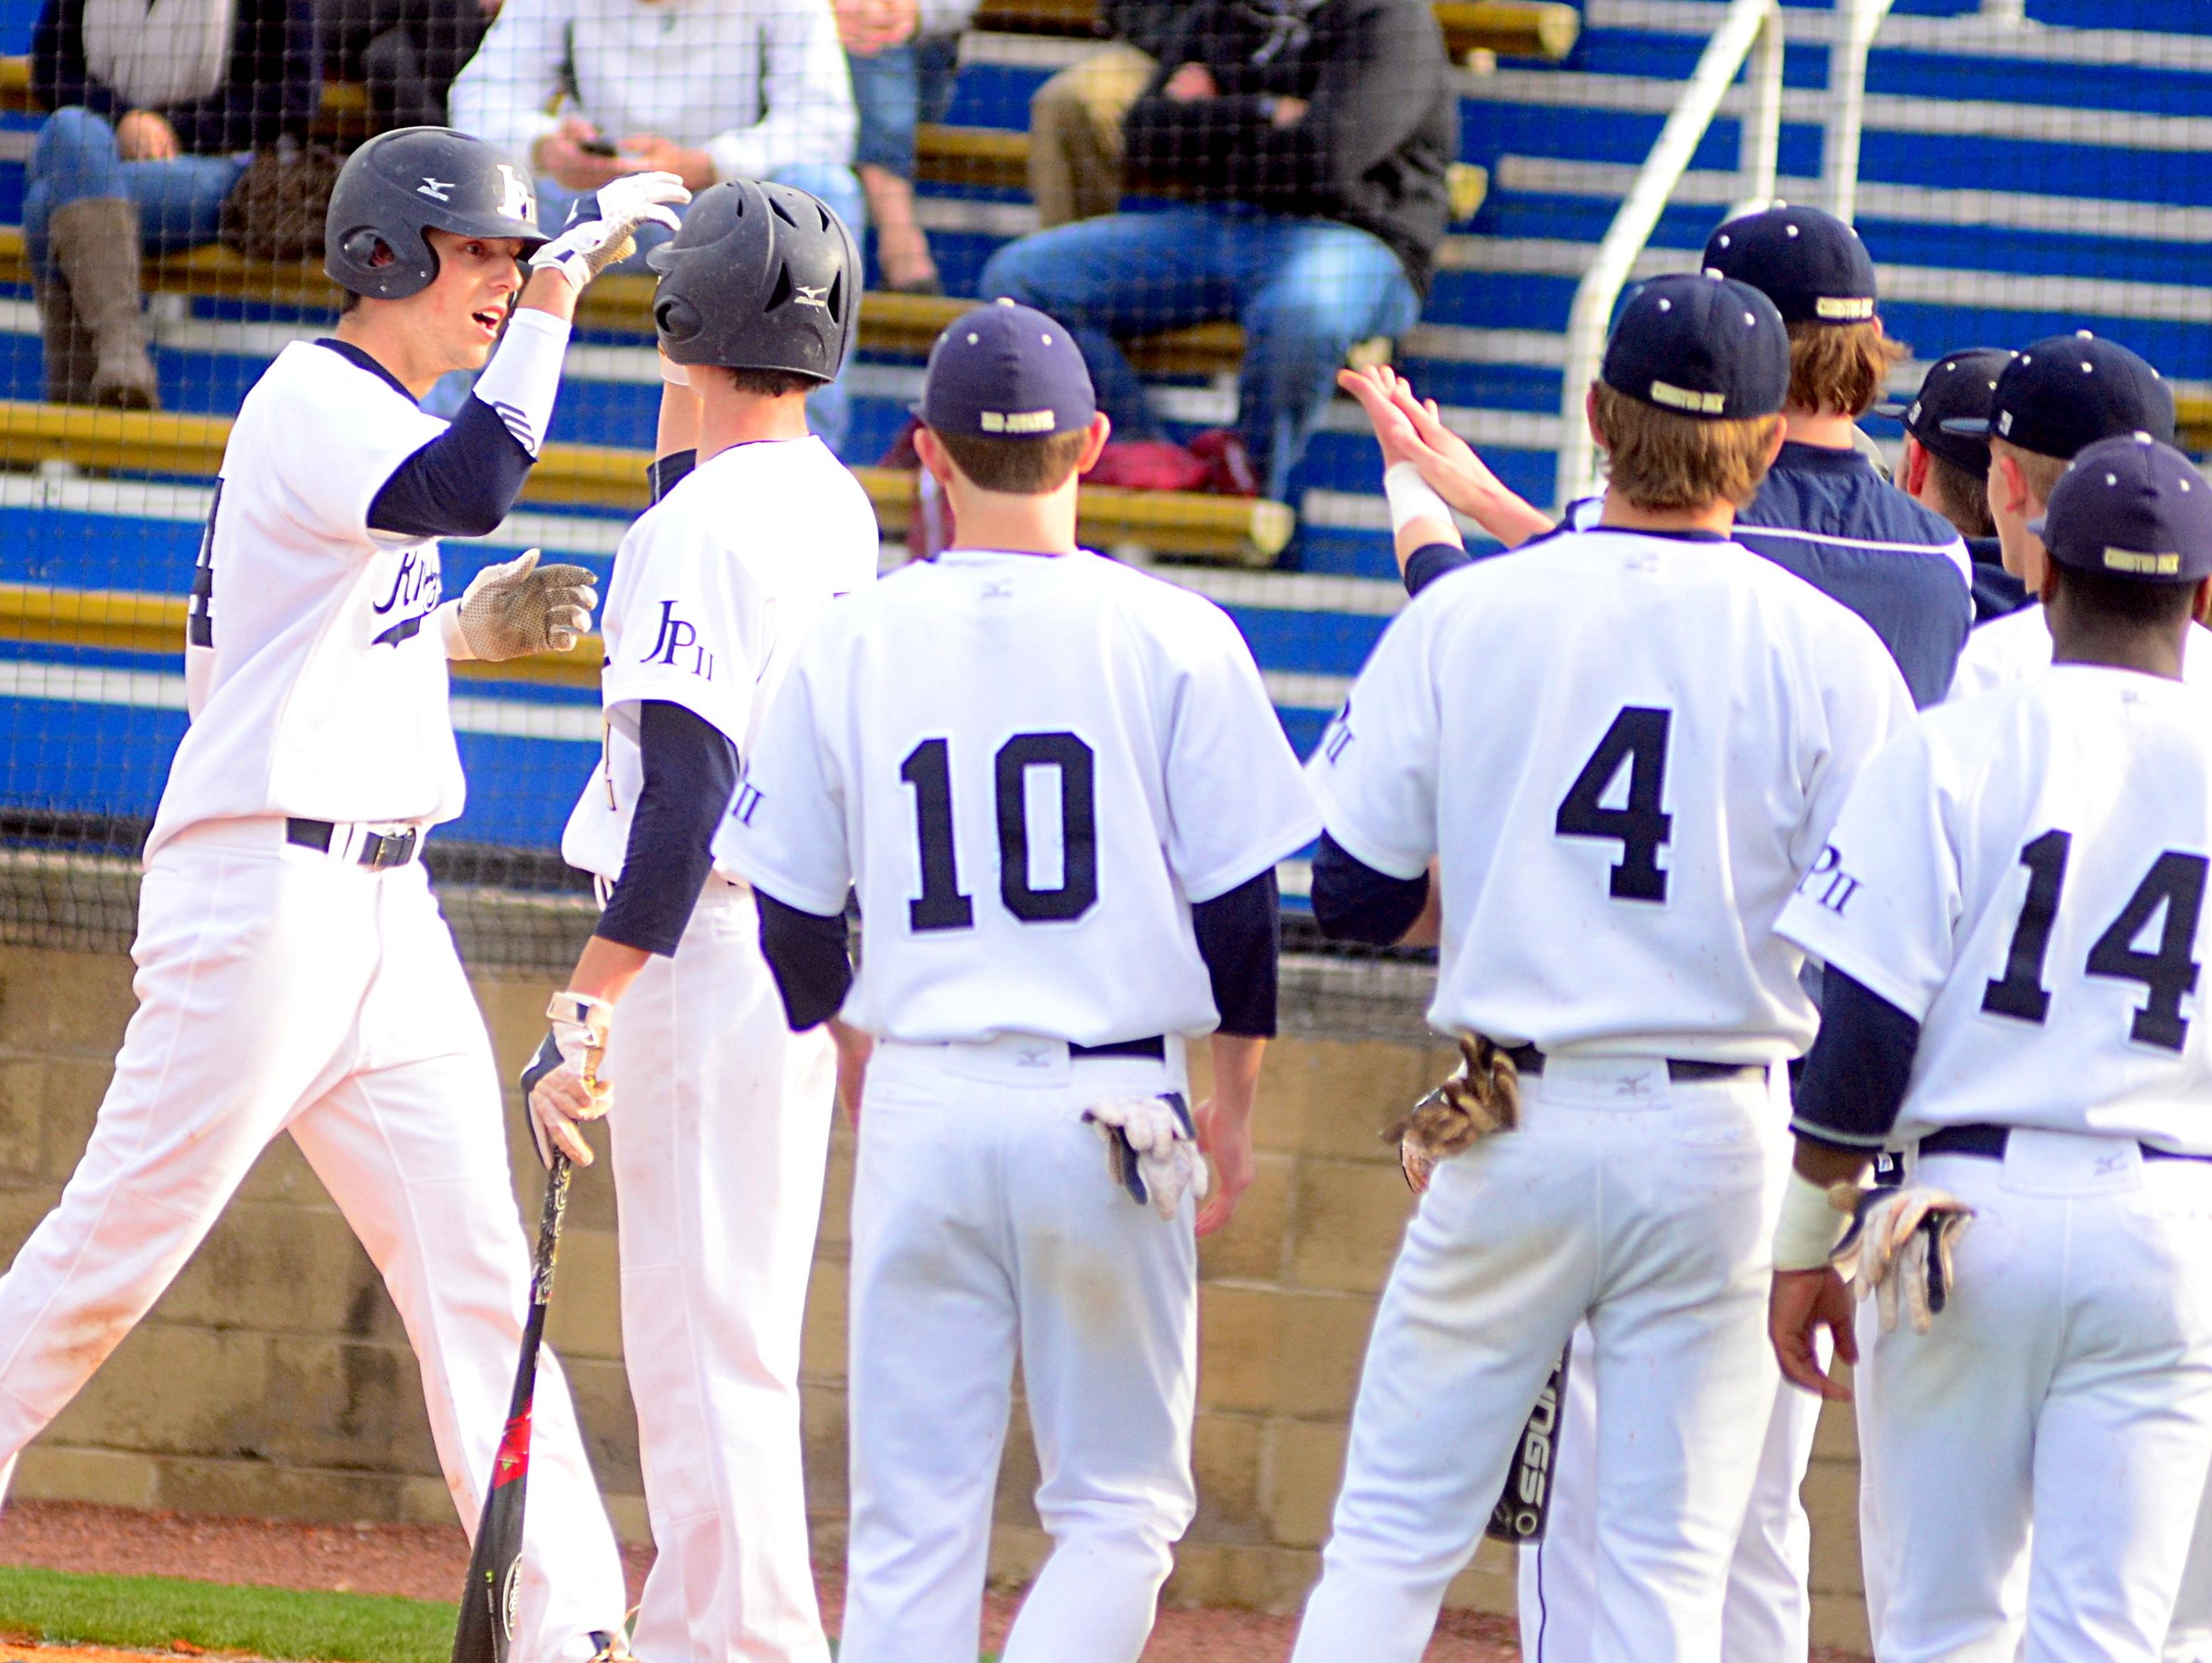 Pope John Paul II High senior Ryan Hatten (left) is greeted by teammates after his first-inning home run during game one of Friday evening's doubleheader. Hatten had two hits and drove in three runs.